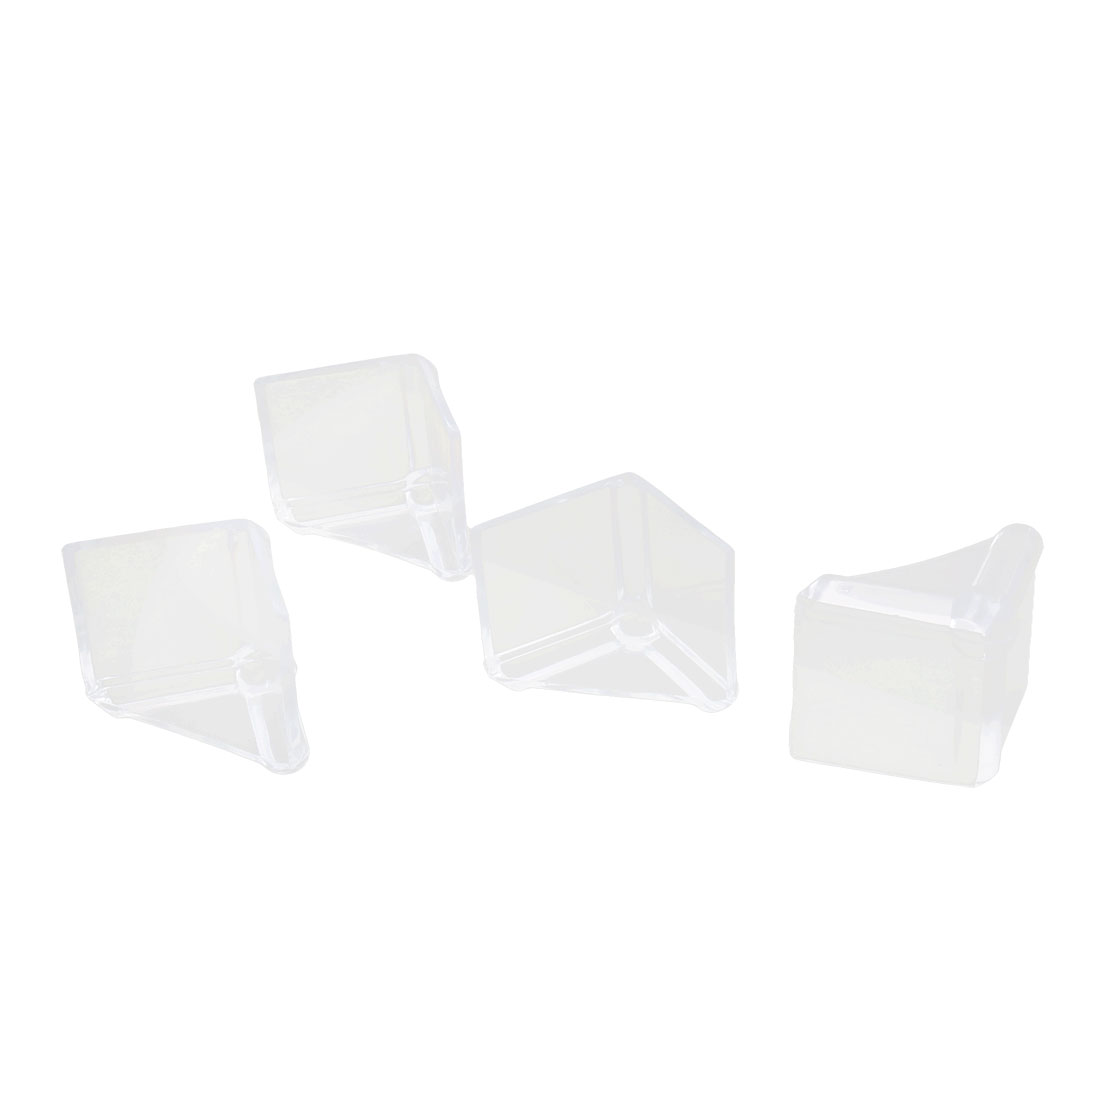 Furniture Table Desk Worktop Corner Guard Cover Cap Bumper Cushion Clear 4pcs